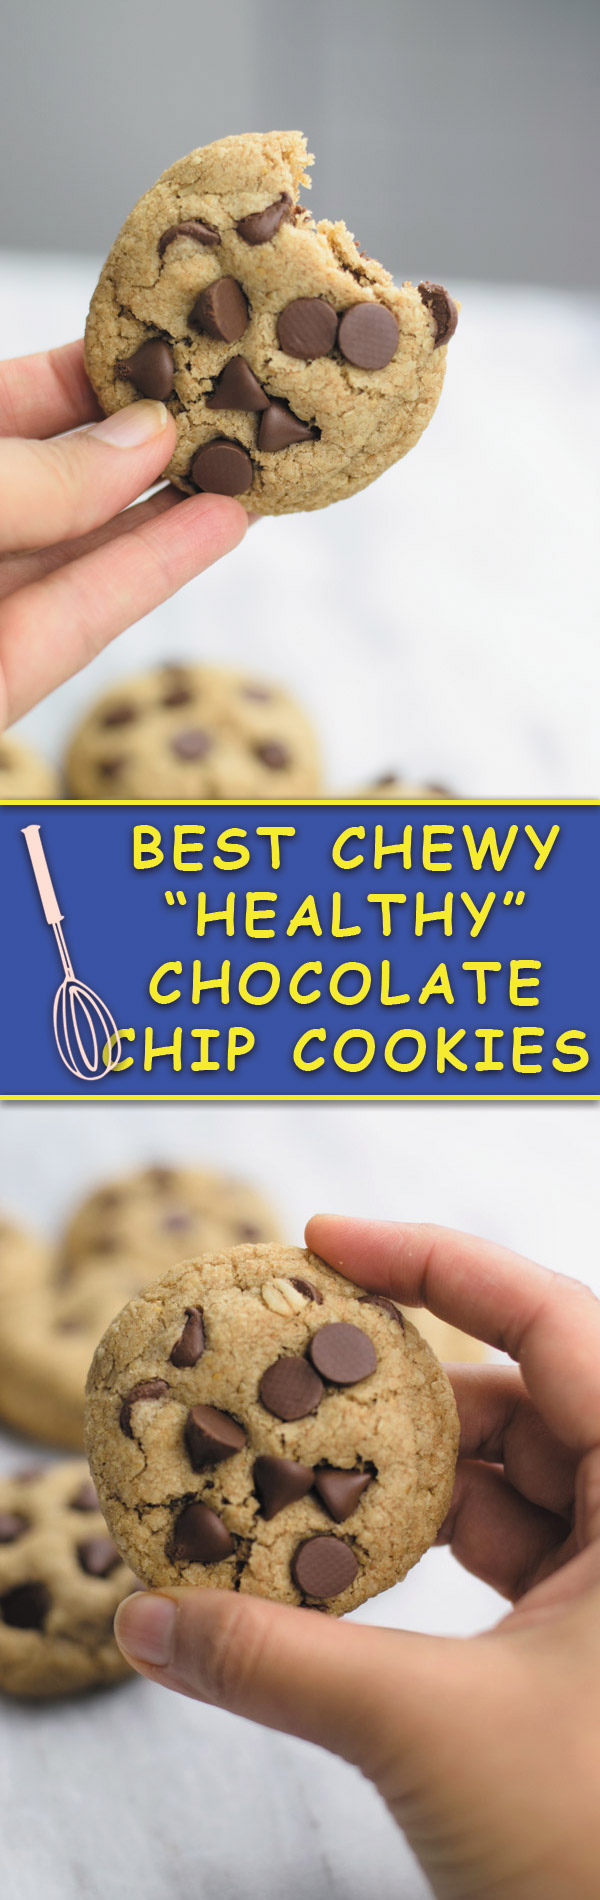 best chewy healthy chocolate chip cookies - THESE cookies have half the fat or regular chocolate chip cookies BUT SAME GREAT SOFT & CHEWY taste! Whole wheat flour and oats make it extra good!